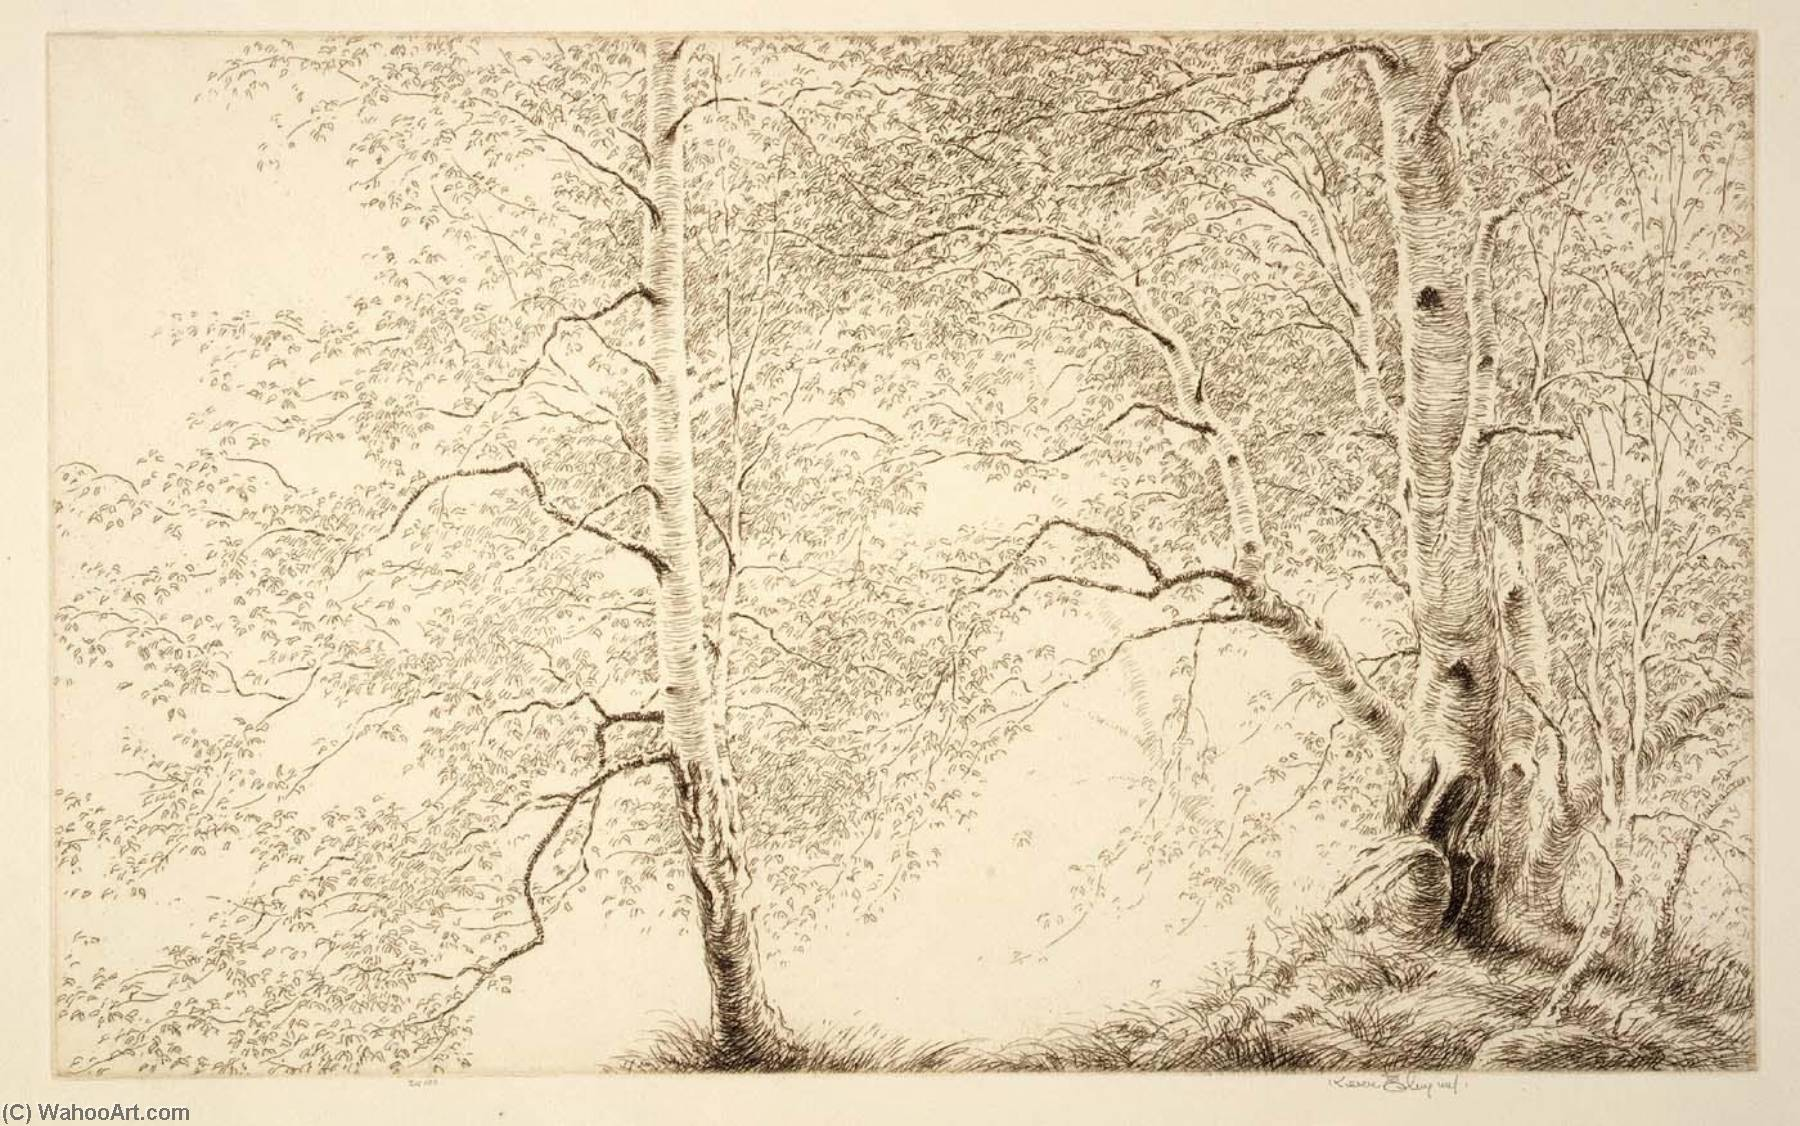 Birches, Etching by Kerr Eby